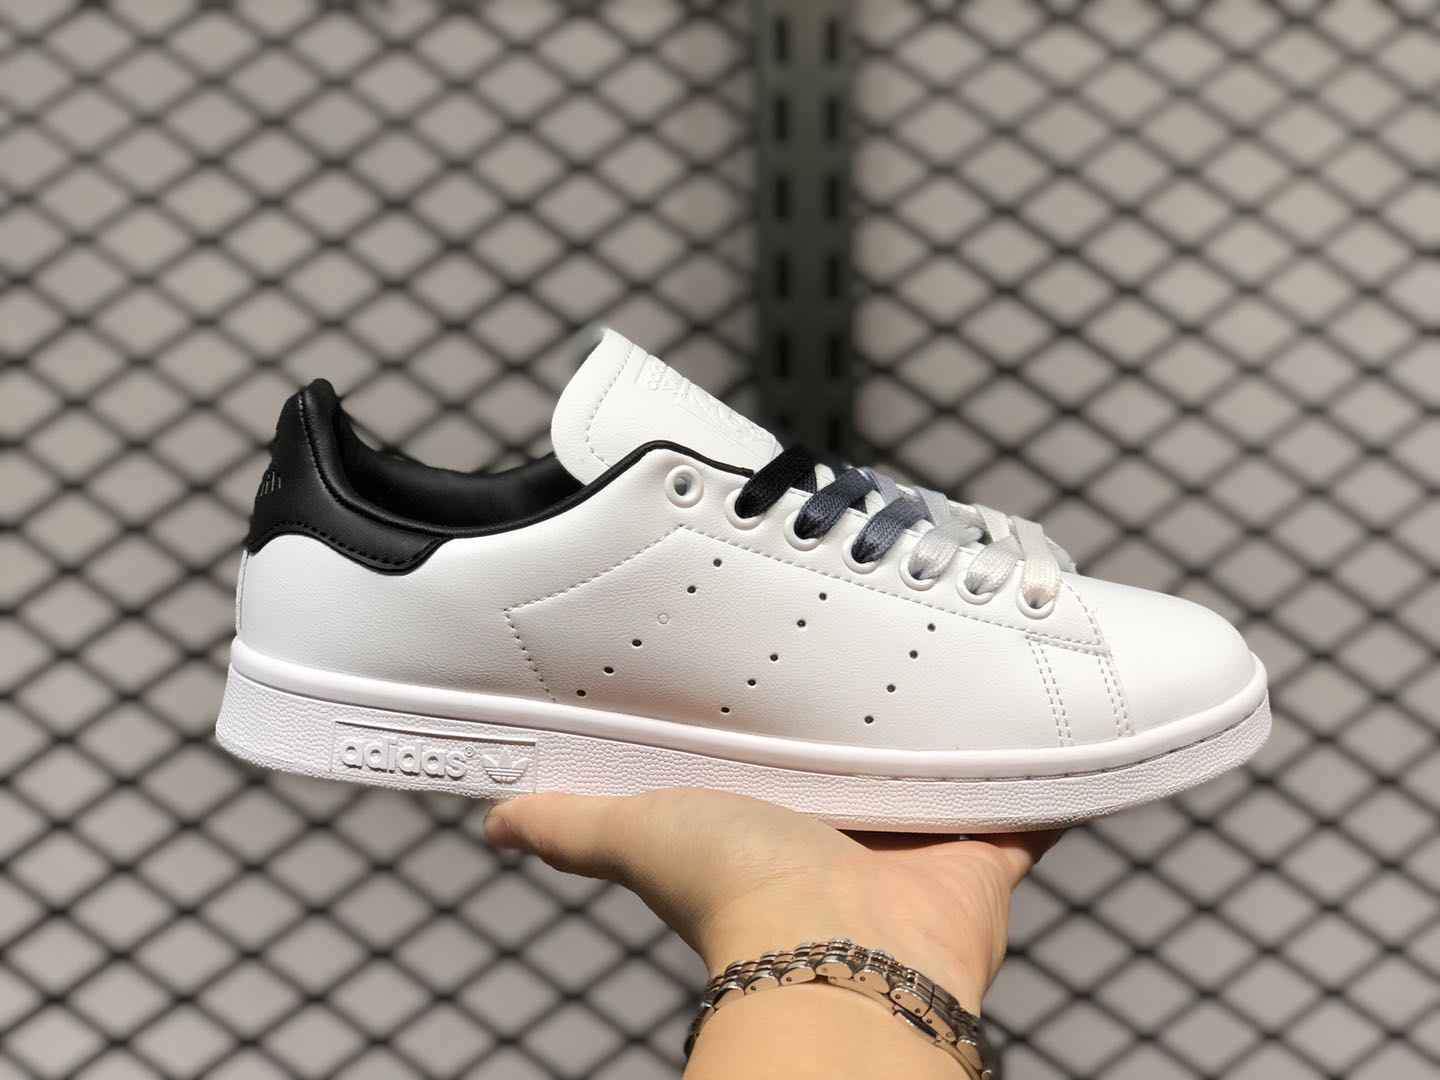 Adidas Stan Smith Shoes EF4689 Cloud White-Core Black For Sale